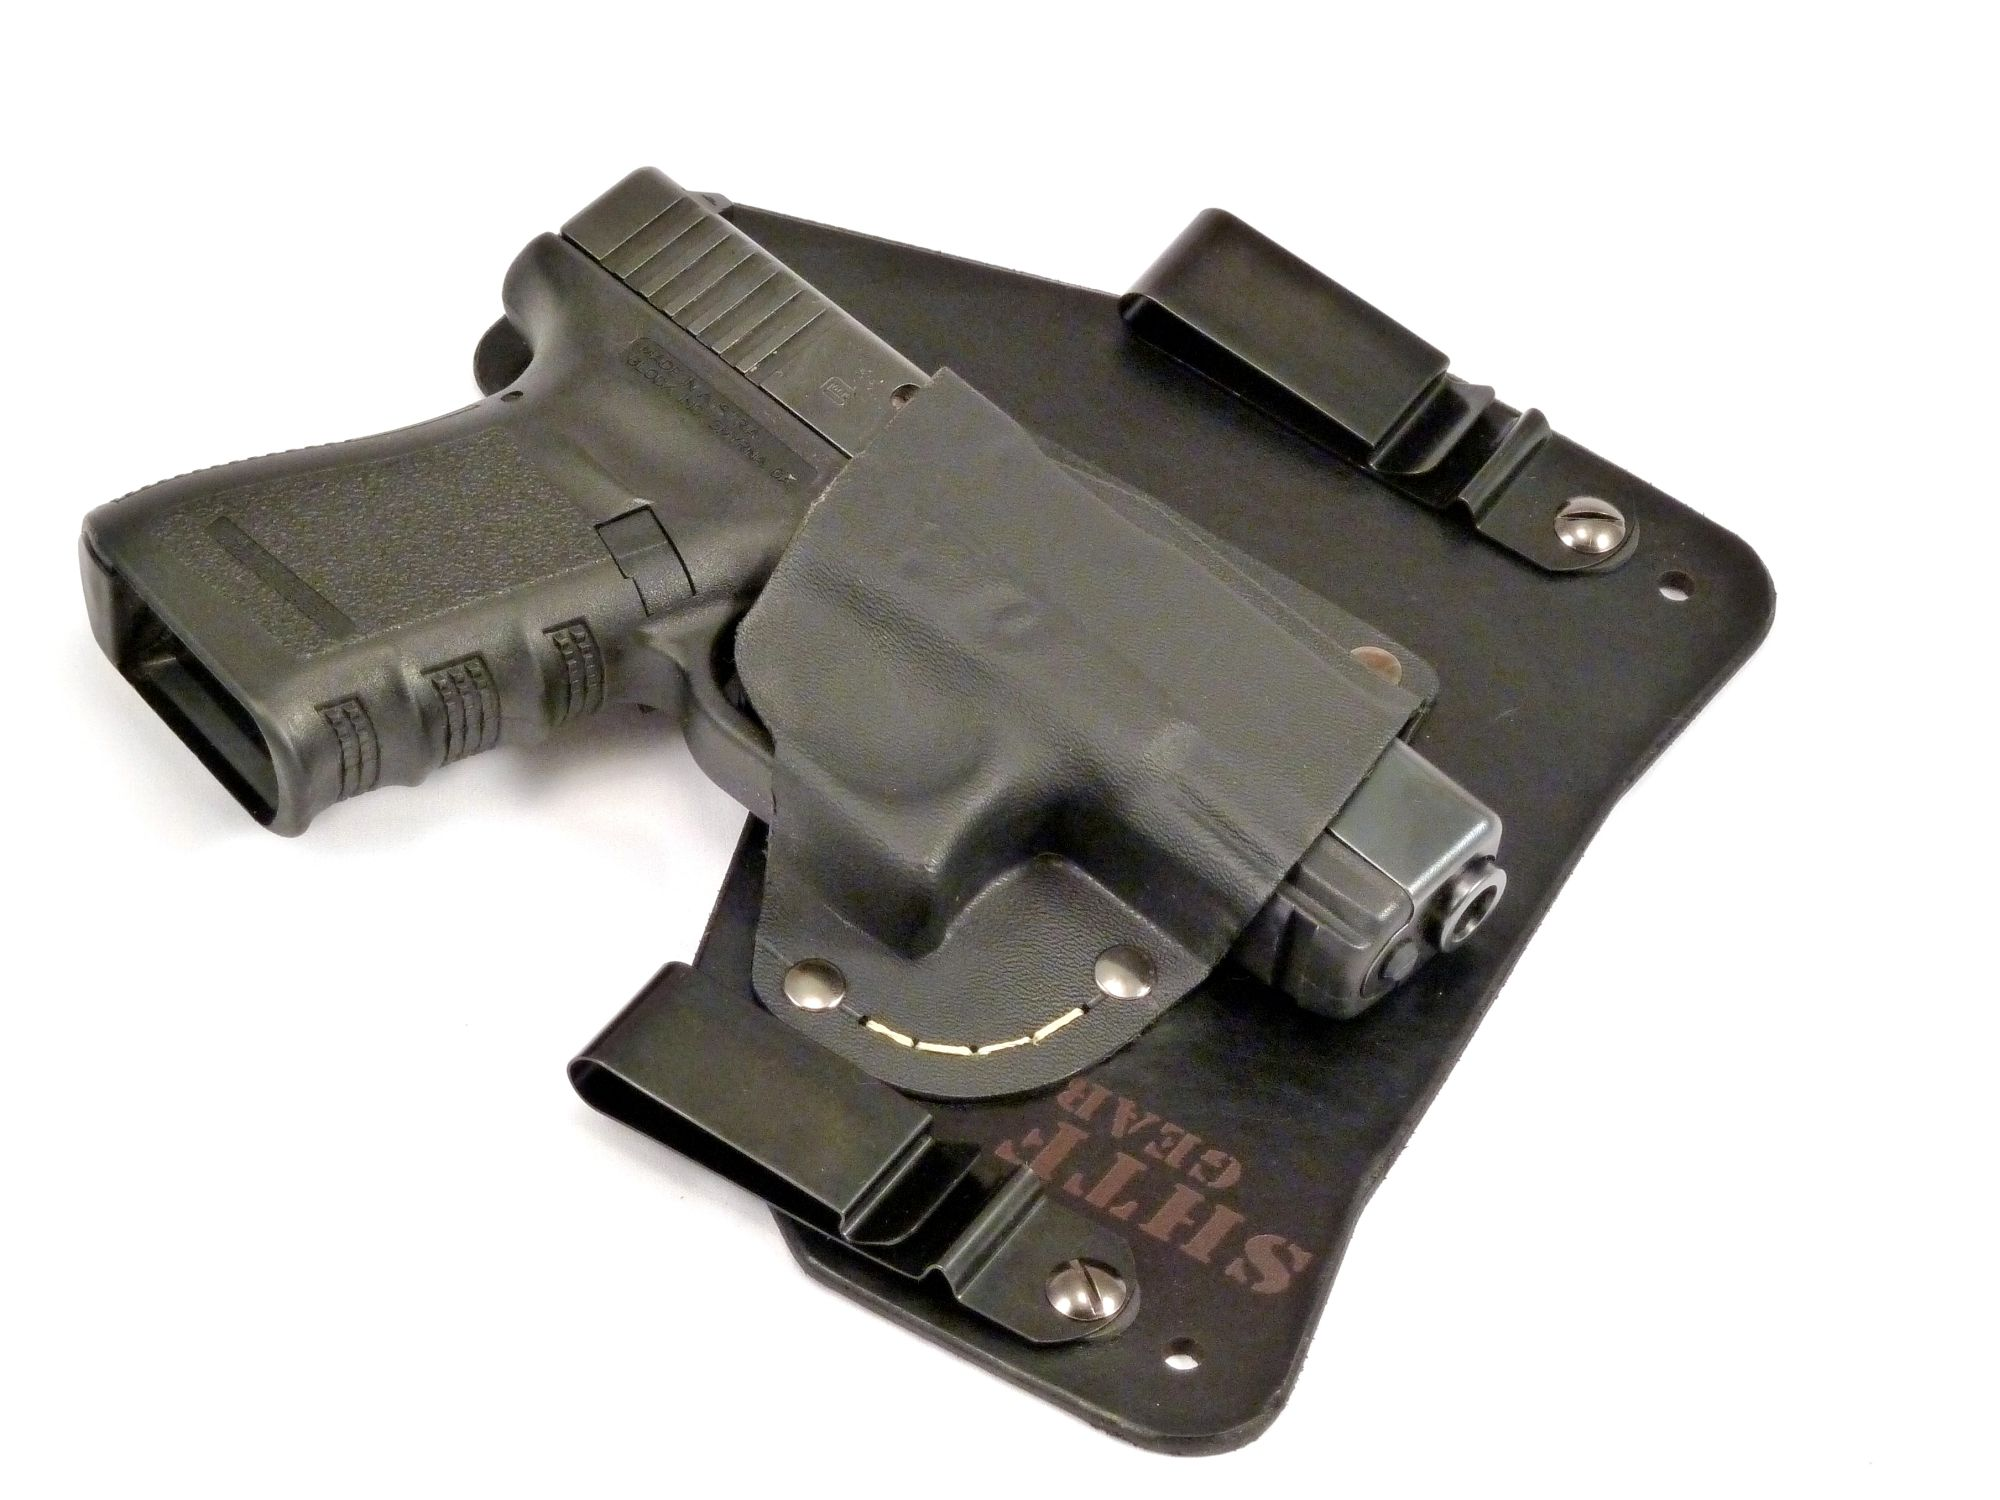 Give a new guy some help with cc a glock 19?-glock-gun-front-left-1500.jpg